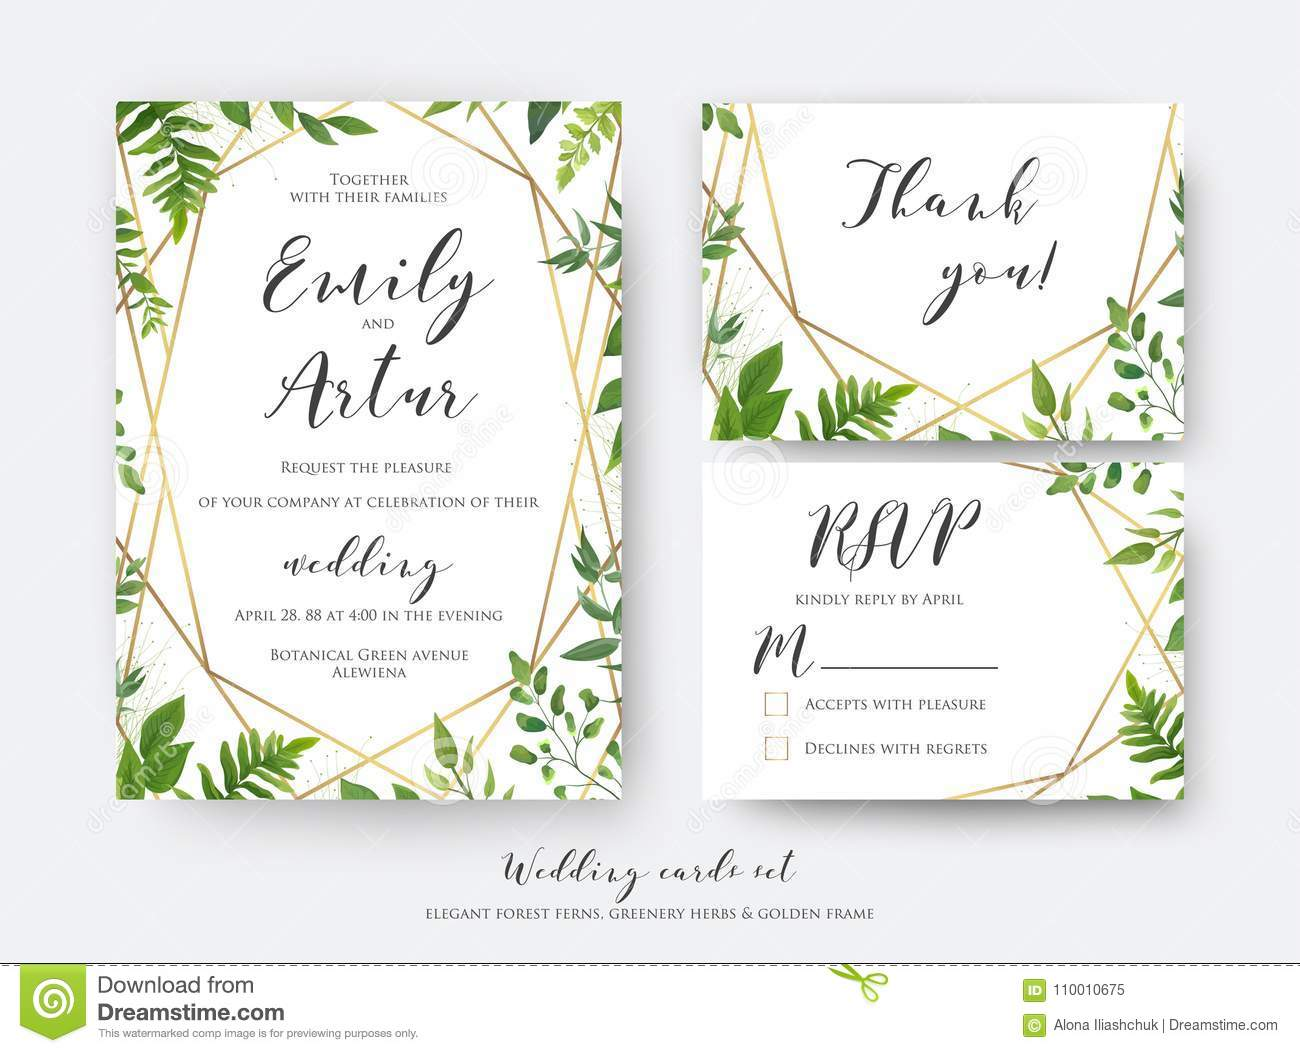 wedding floral invite  invitation  rsvp  thank you card